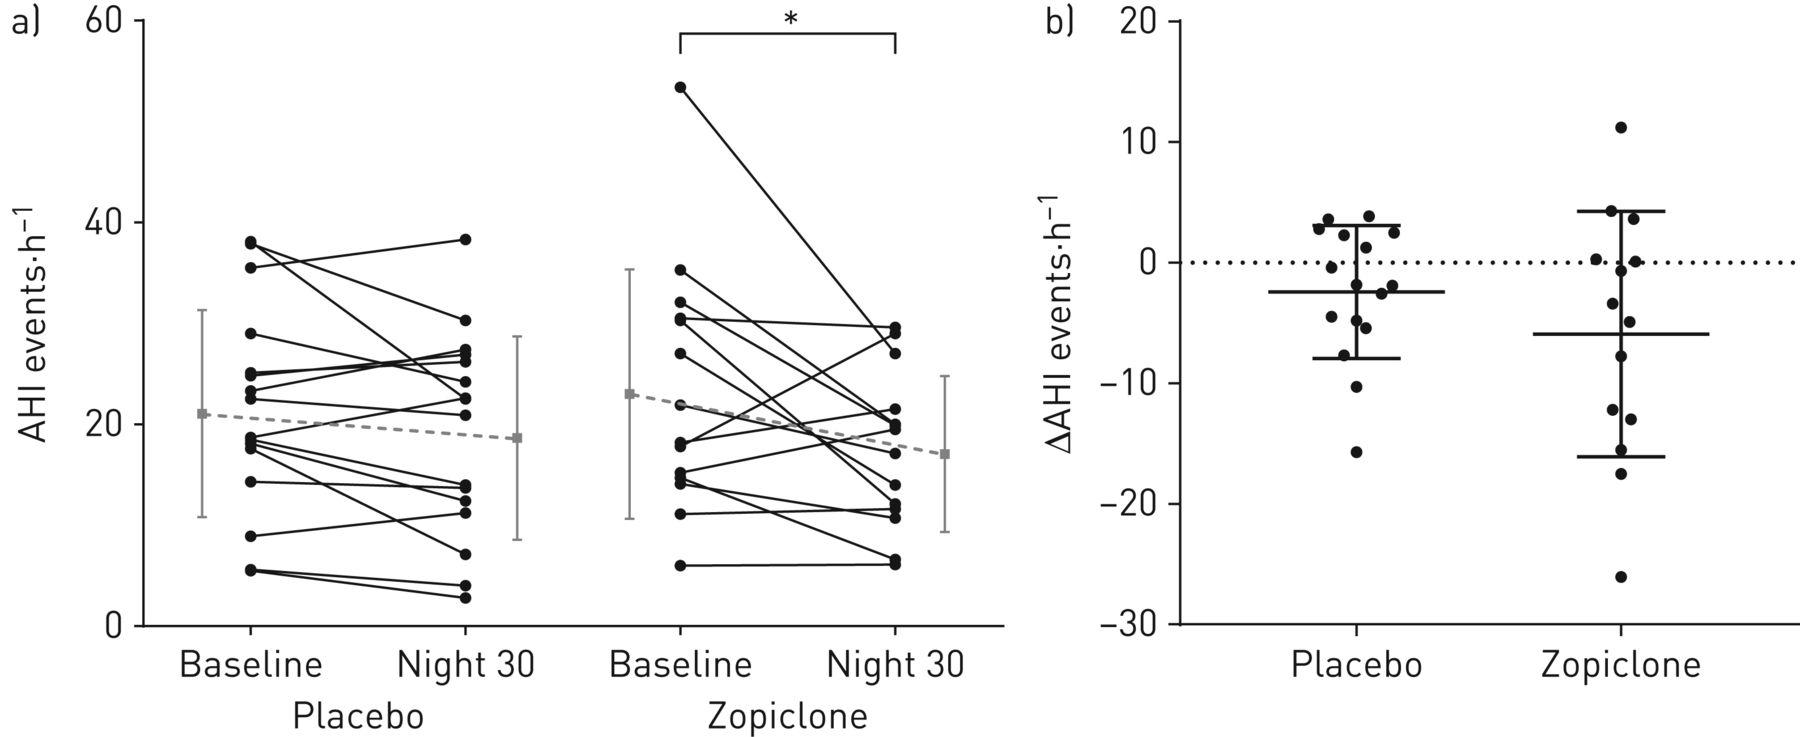 Effect of 1 month of zopiclone on obstructive sleep apnoea